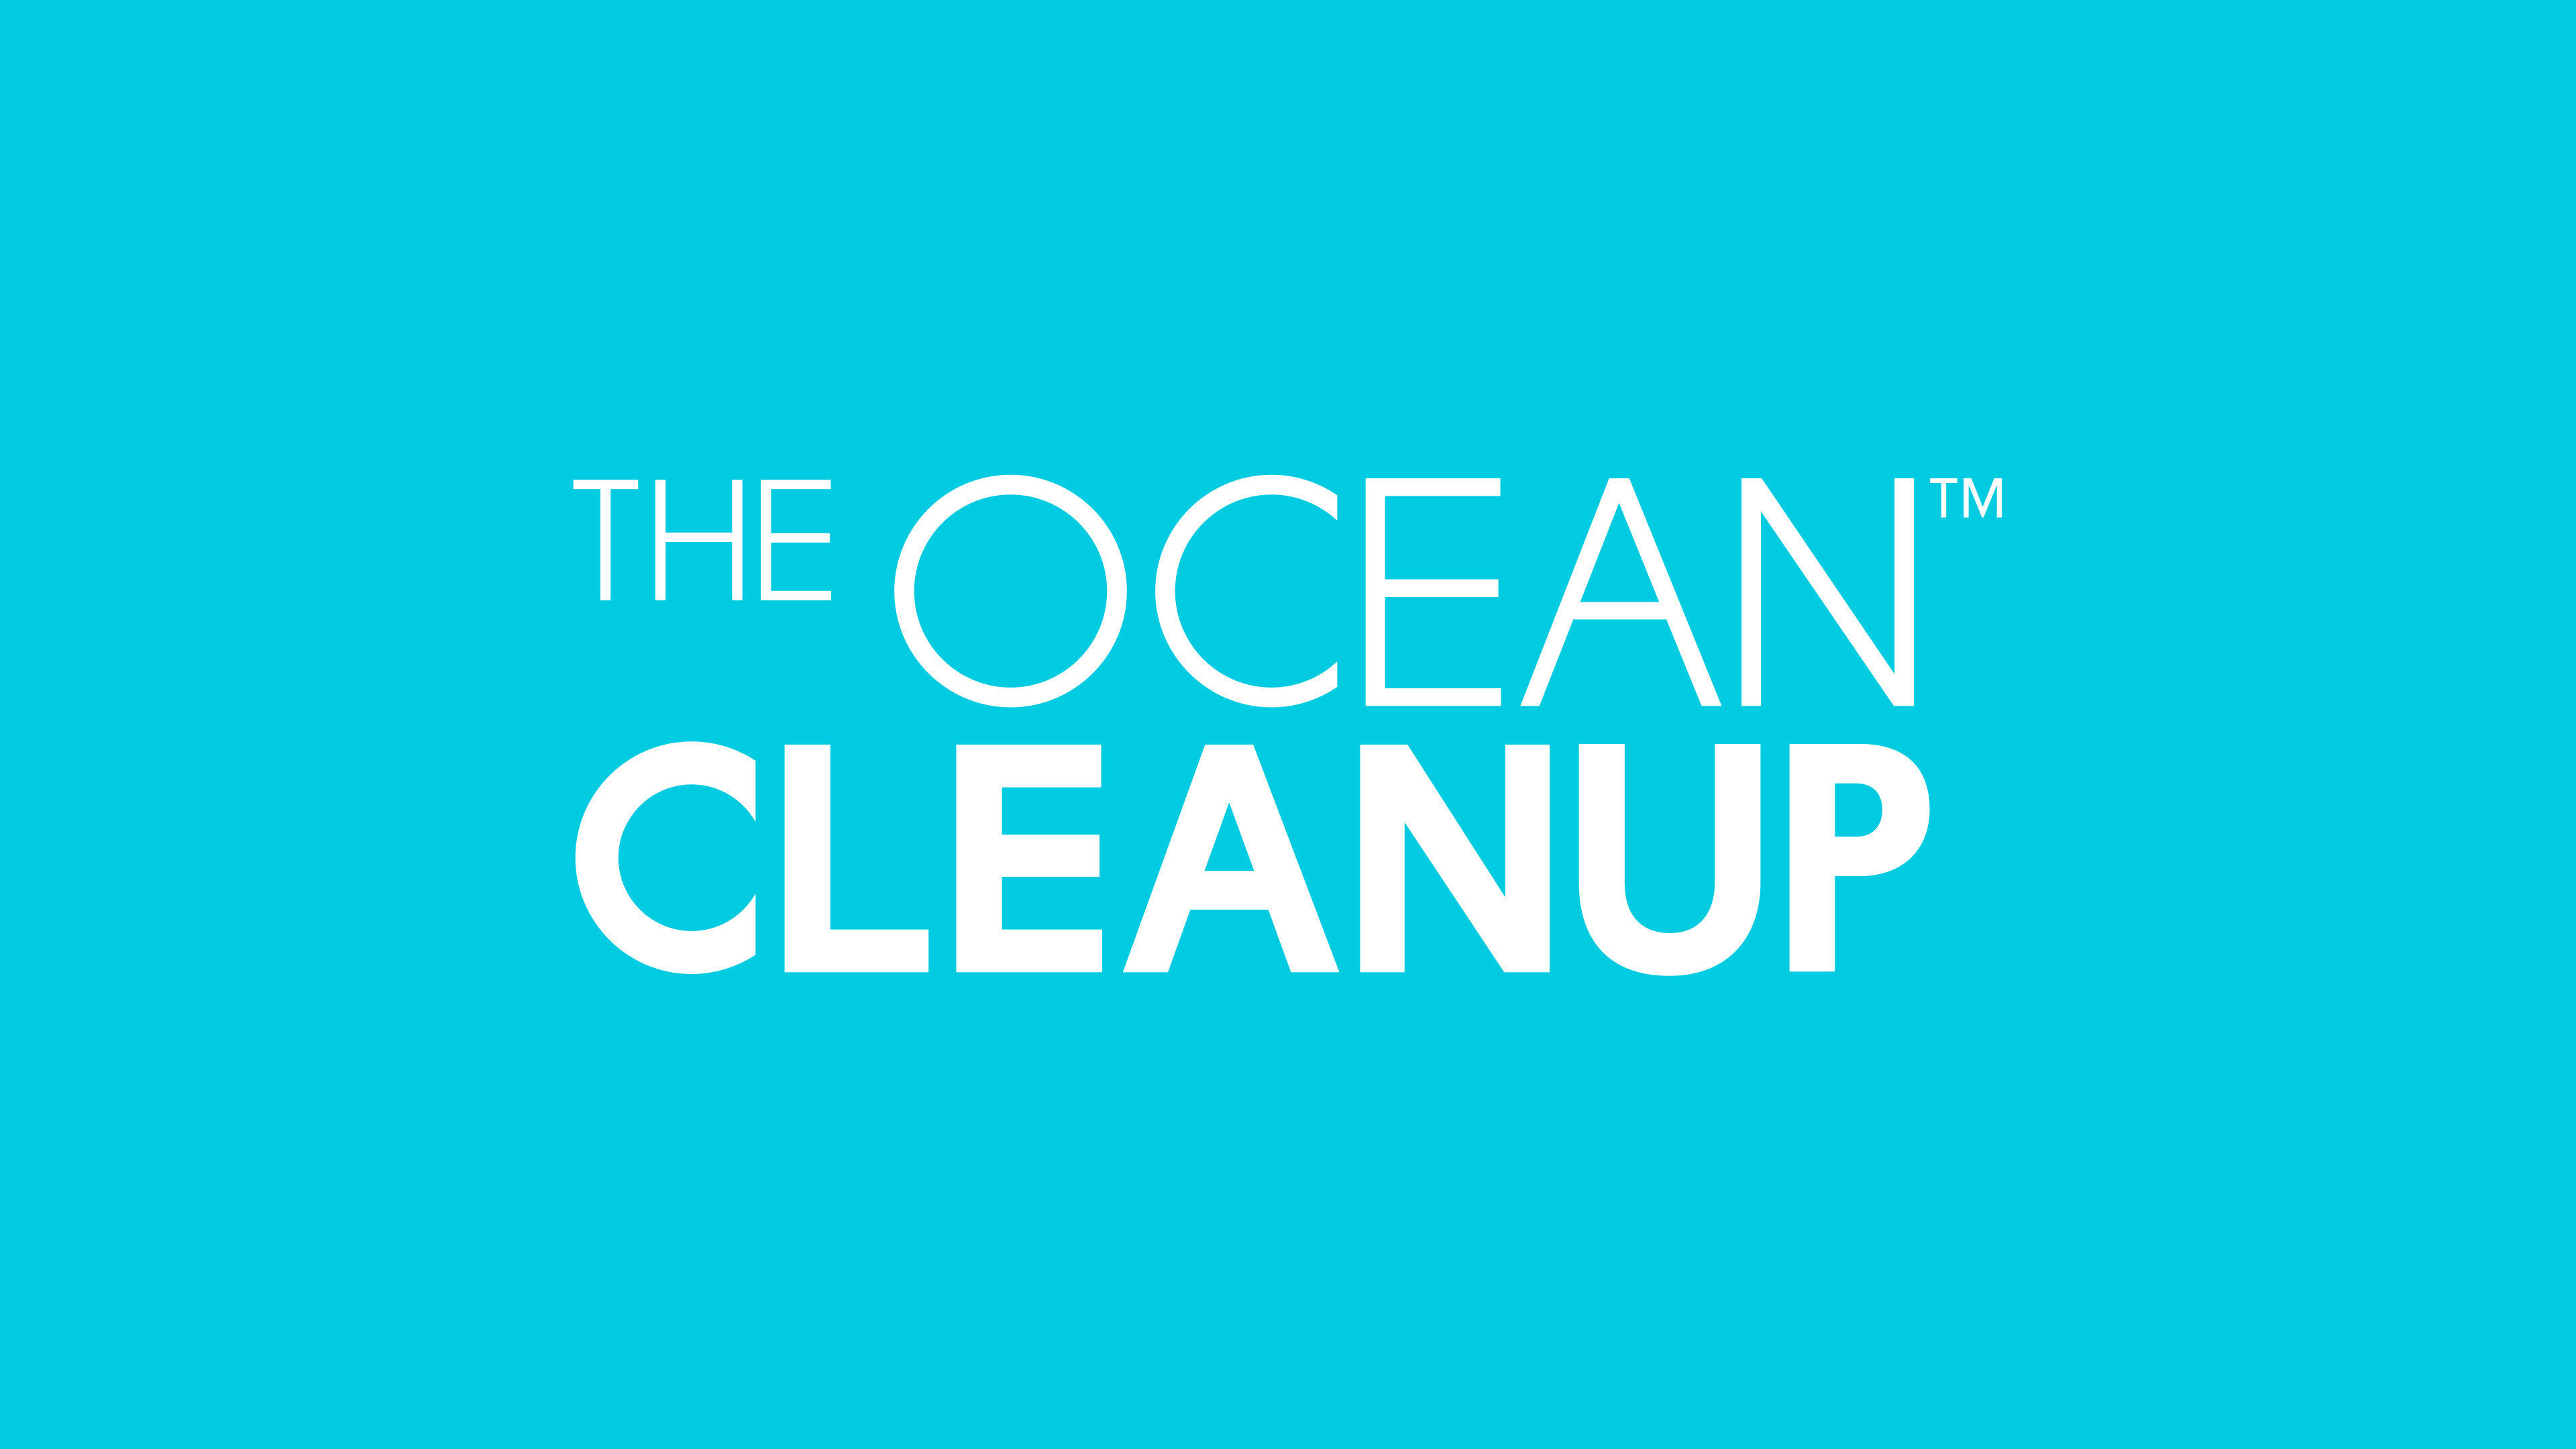 The Ocean Cleanup's logo